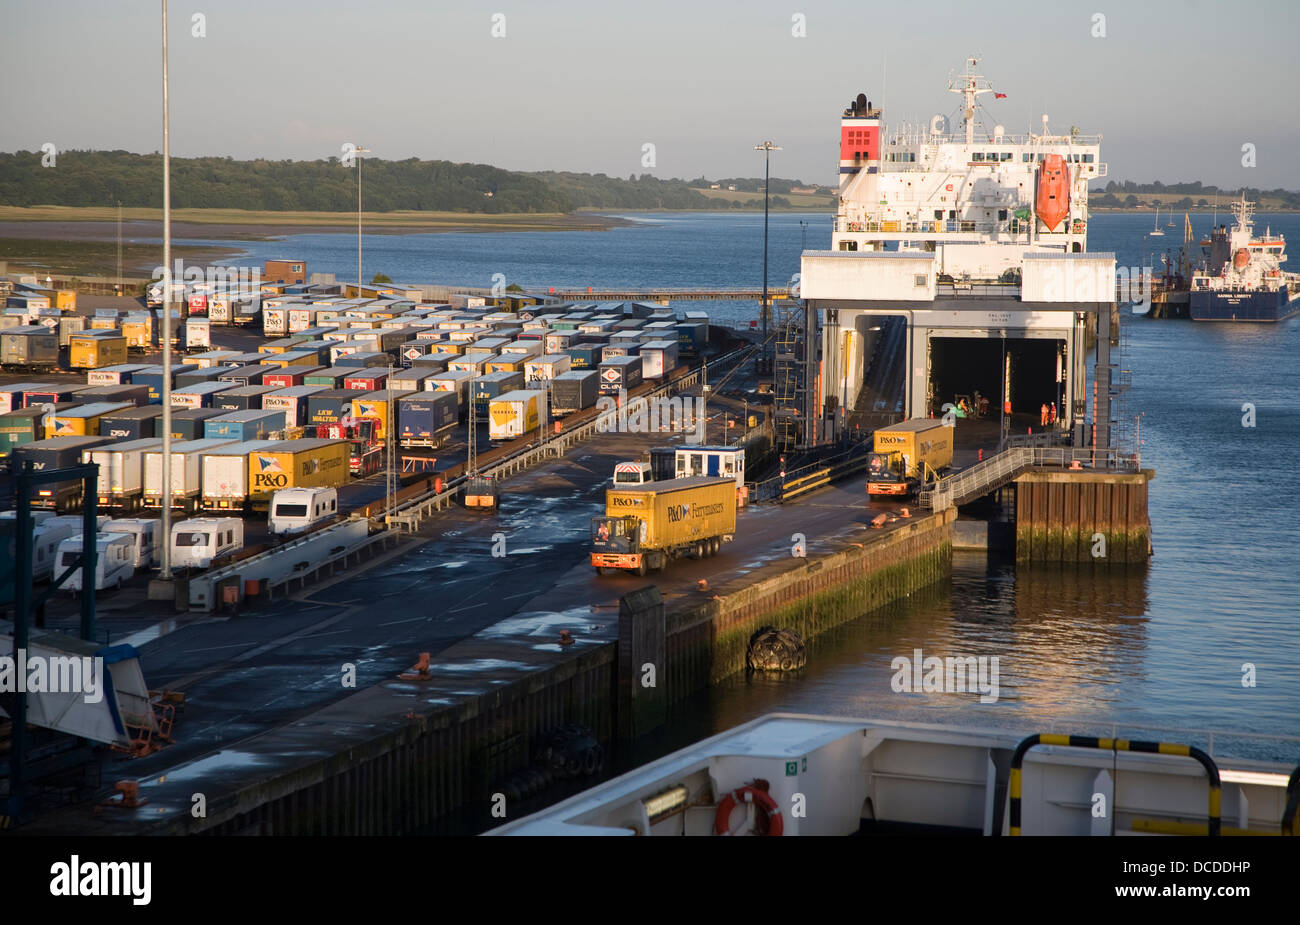 Port activity Parkstone Quay Harwich, Essex, England ferry being unloaded Stock Photo